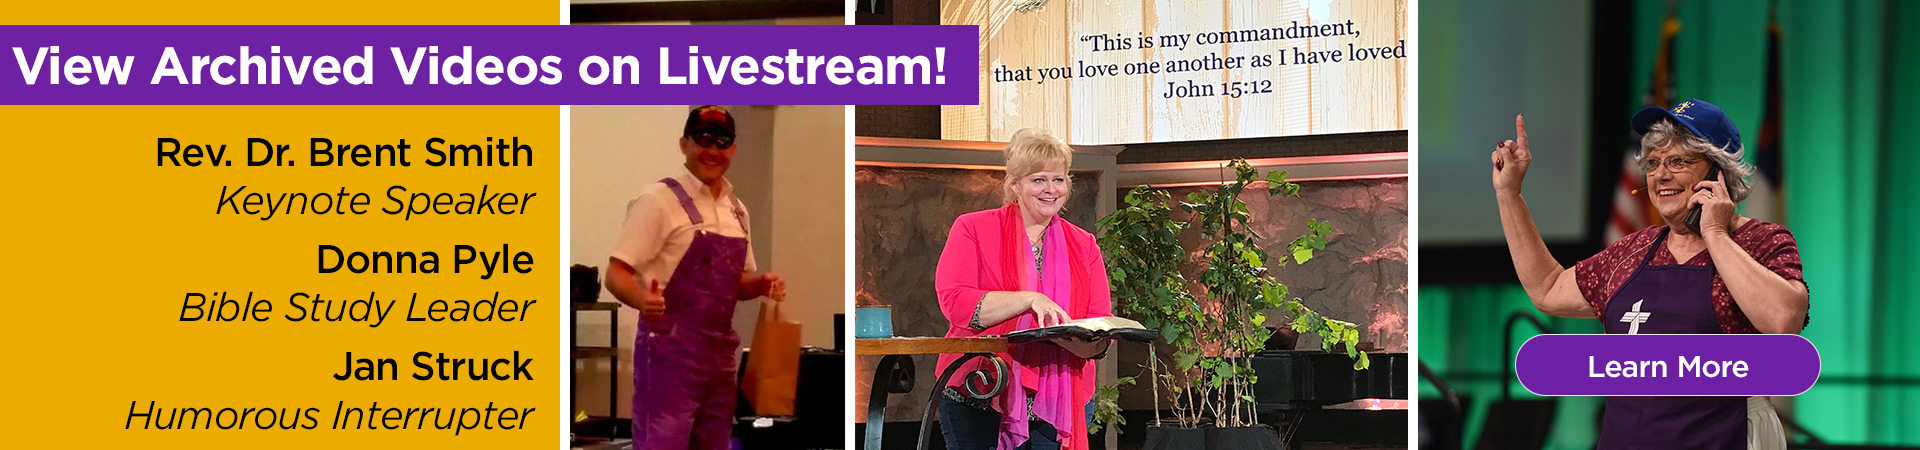 View the archived videos from the 2019 Convention, featuring Rev. Dr. Brent Smith, Donna Pyle, and Jan Struck!